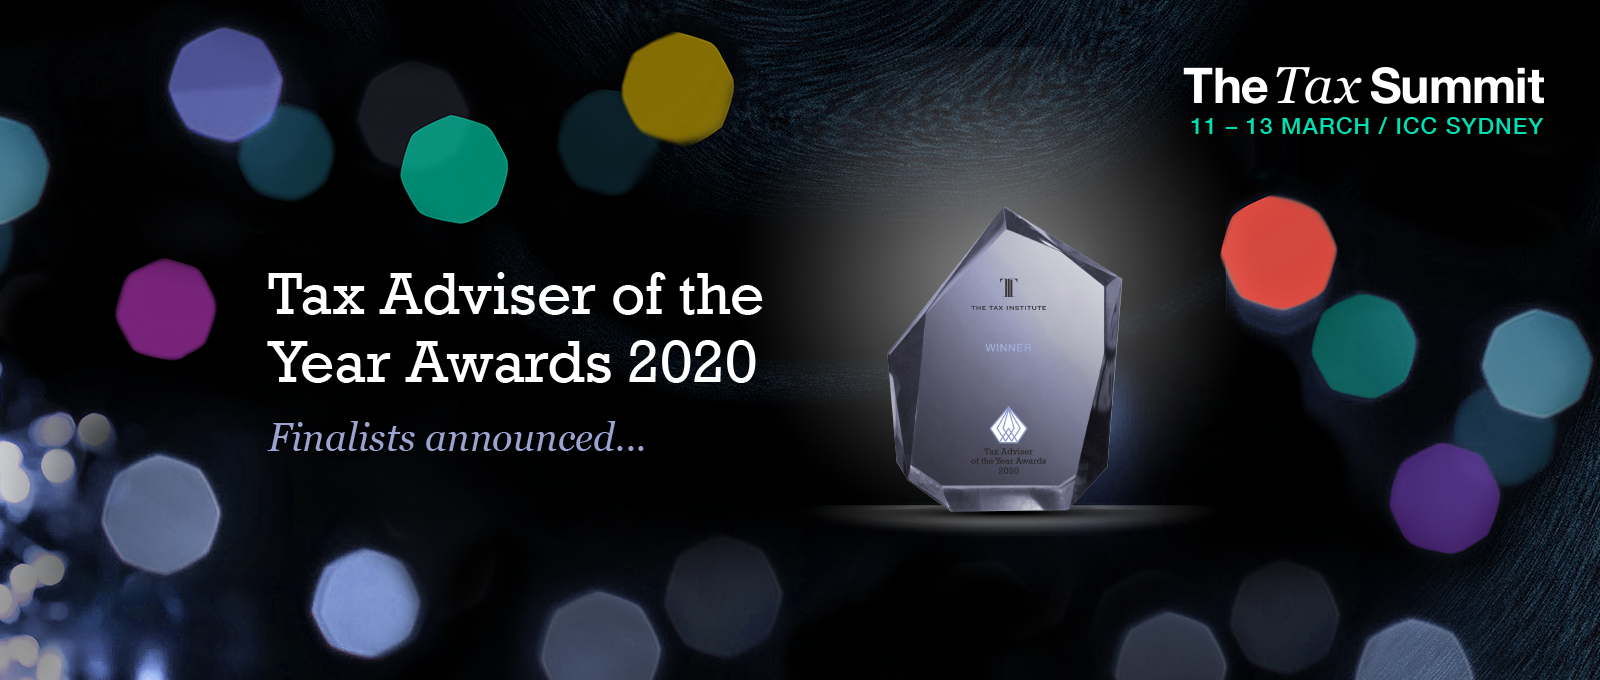 Tax Adviser of the Year Awards 2020